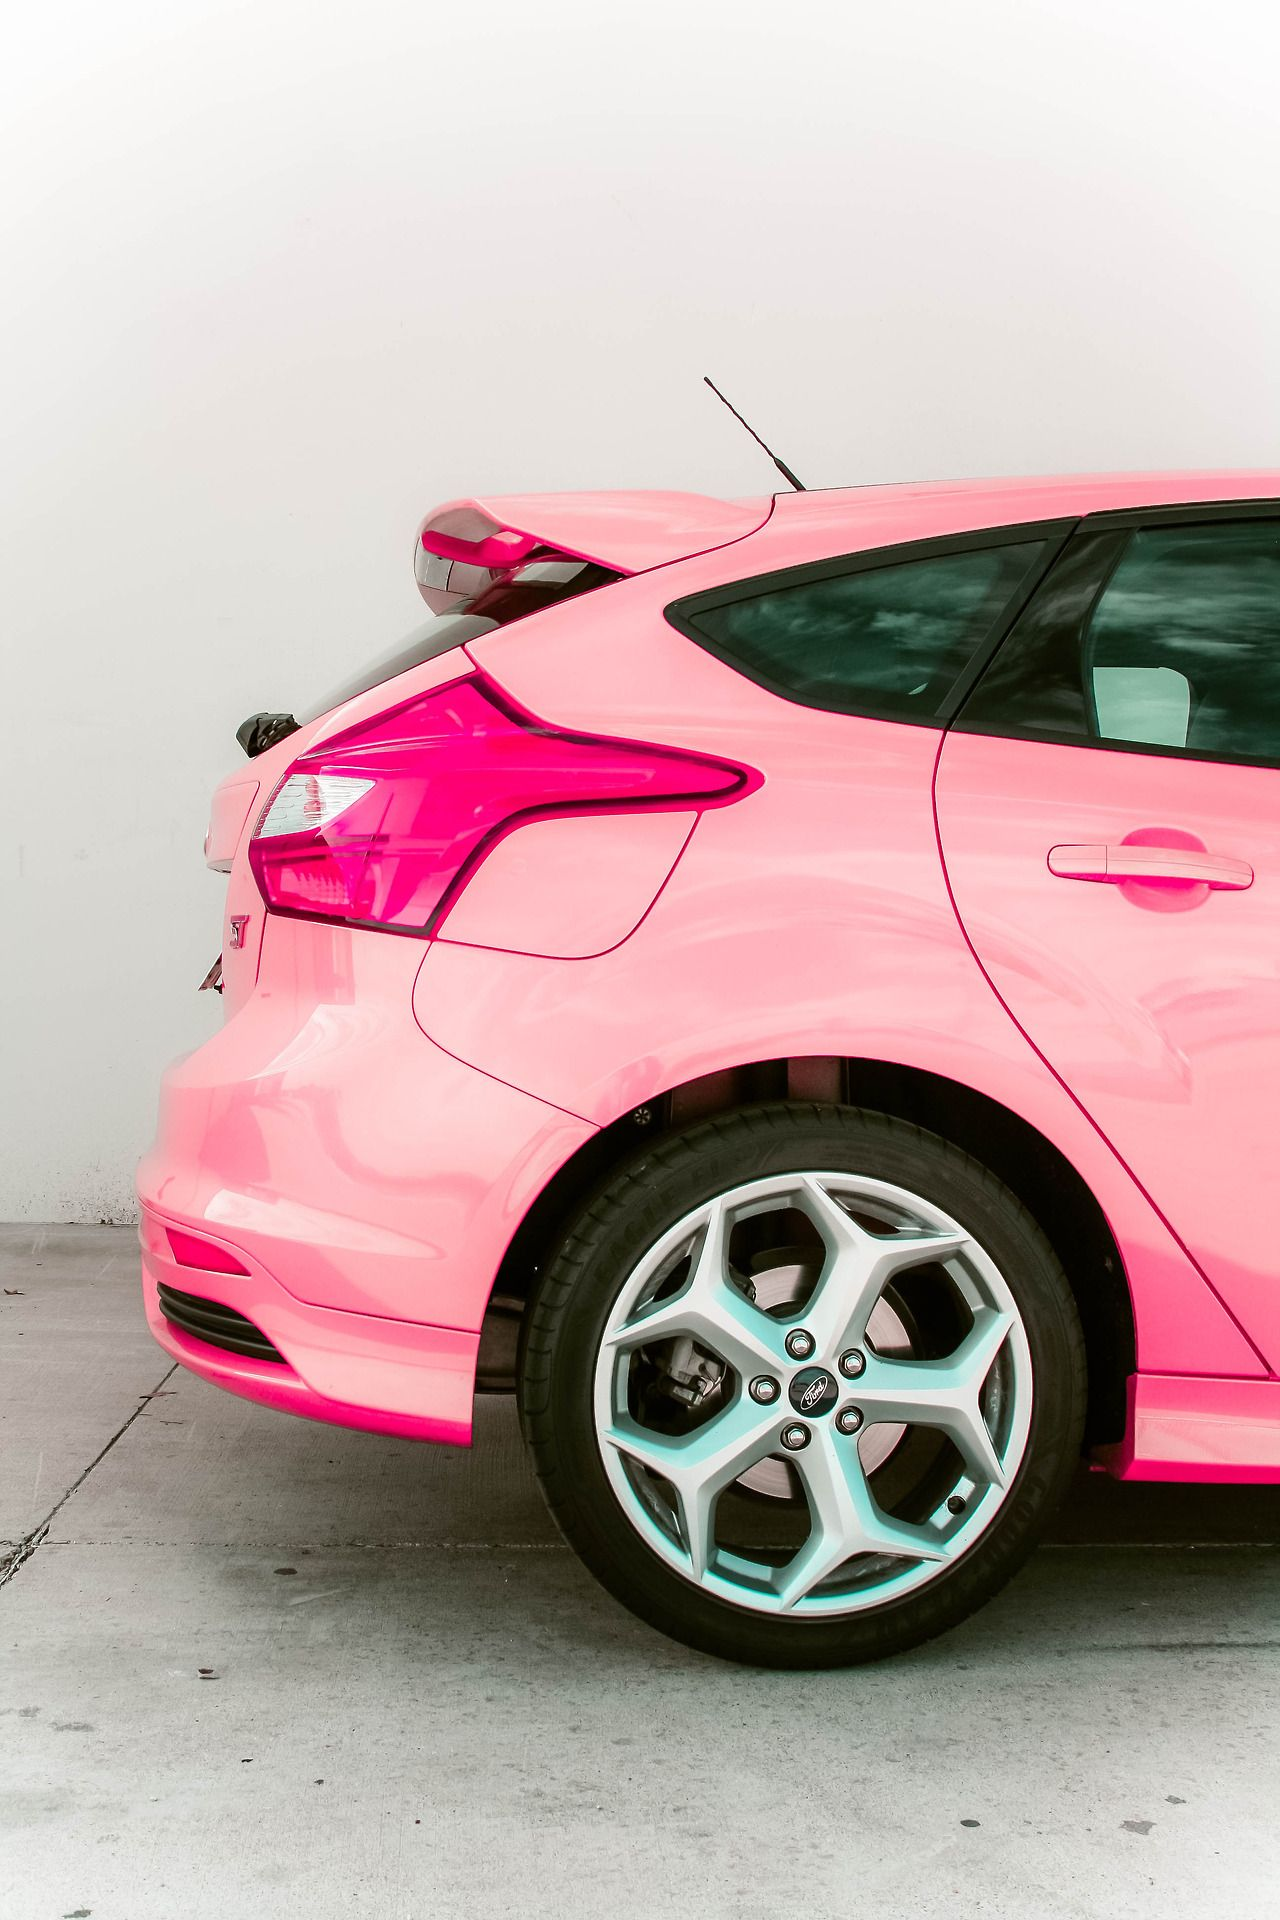 Pink Focus ST...my work car | i wish for... | Pinterest | Cars, Car ...